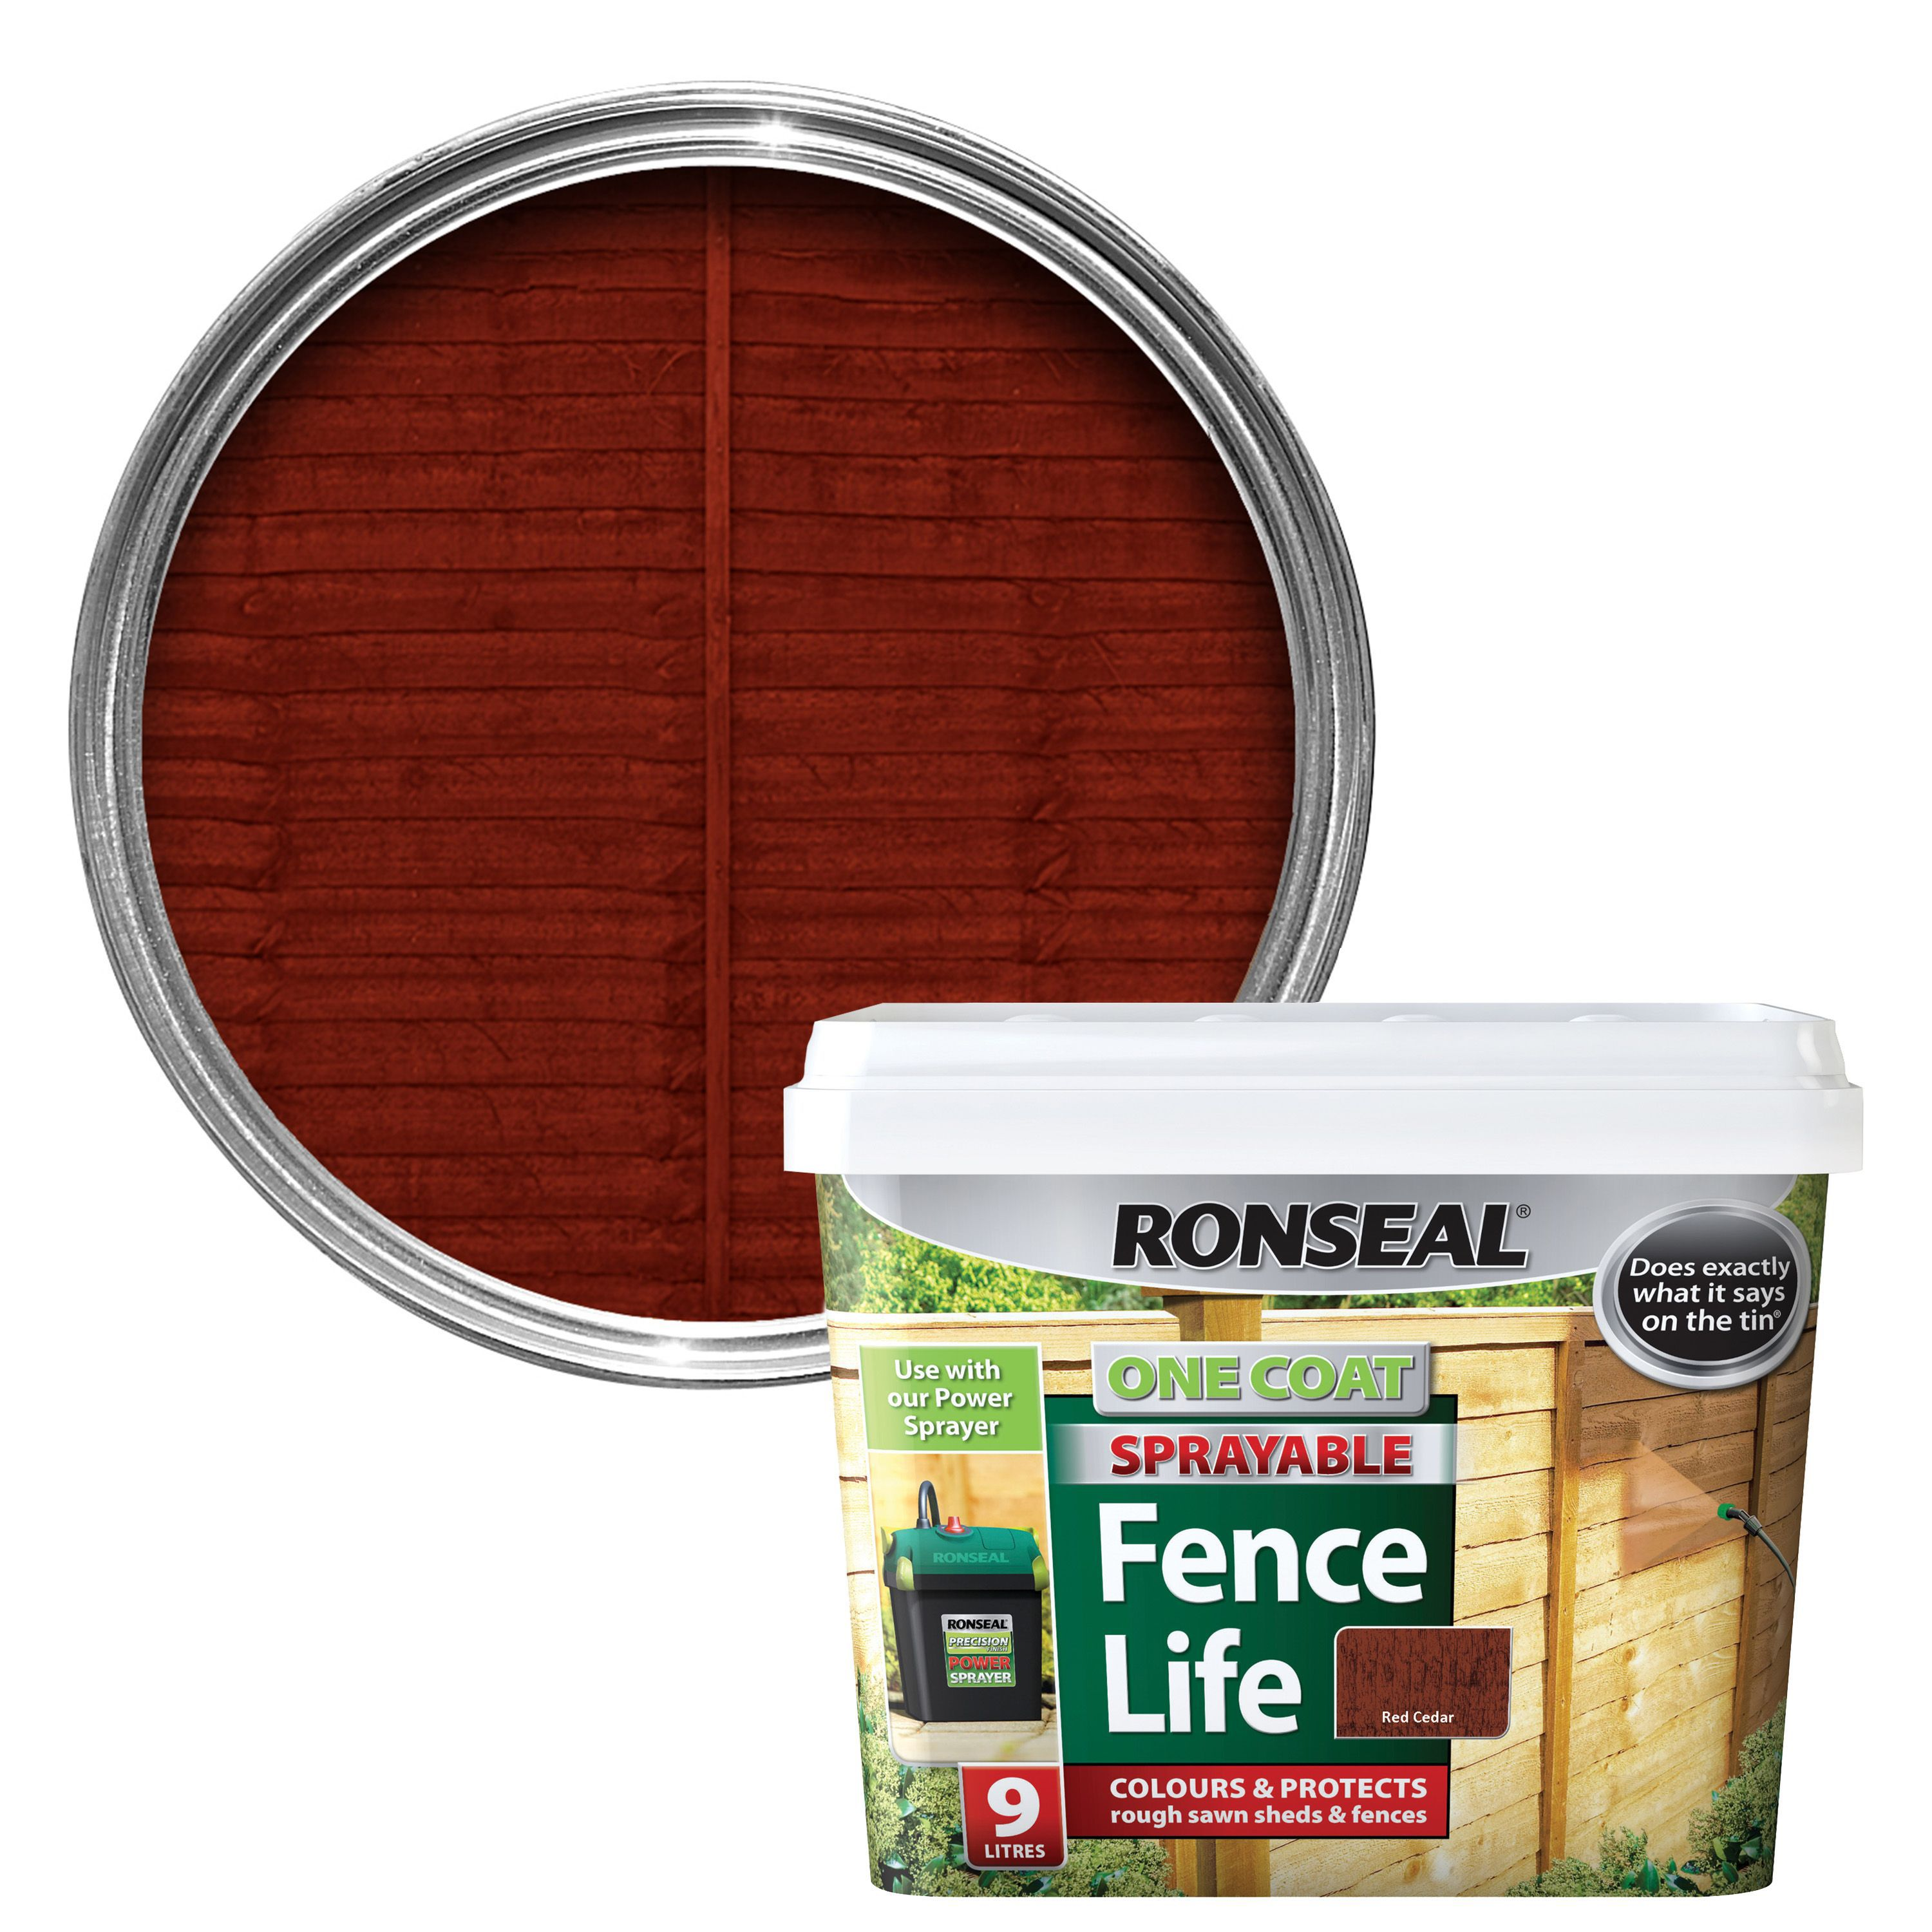 Mesmerizing Cedar Outdoor Paint  Diy With Foxy Ronseal Red Cedar Matt Shed  Fence Stain L With Adorable Grey Gardens Movie Also Garden Storage Boxes With Lids In Addition Offspring Covent Garden And Gertrude Jekyll Gardens As Well As Evergreen Shrubs For Small Gardens Additionally Gardening Careers From Diycom With   Foxy Cedar Outdoor Paint  Diy With Adorable Ronseal Red Cedar Matt Shed  Fence Stain L And Mesmerizing Grey Gardens Movie Also Garden Storage Boxes With Lids In Addition Offspring Covent Garden From Diycom